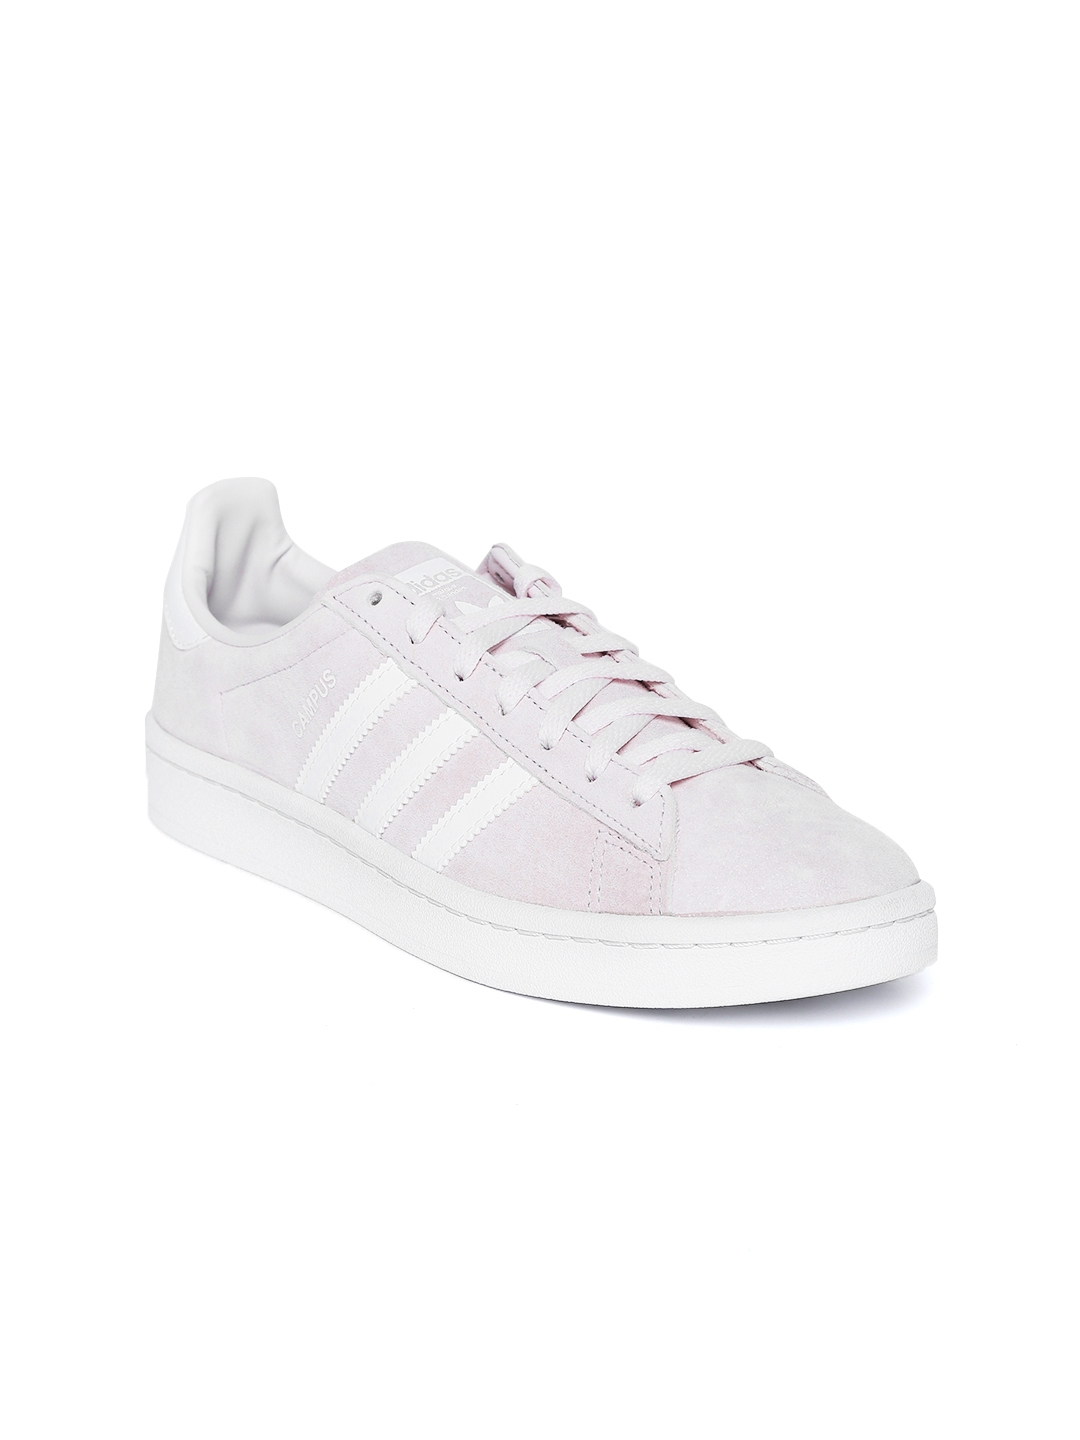 Buy Adidas Originals Women Lavender Campus Nubuck Leather Sneakers ... faaa014bc7